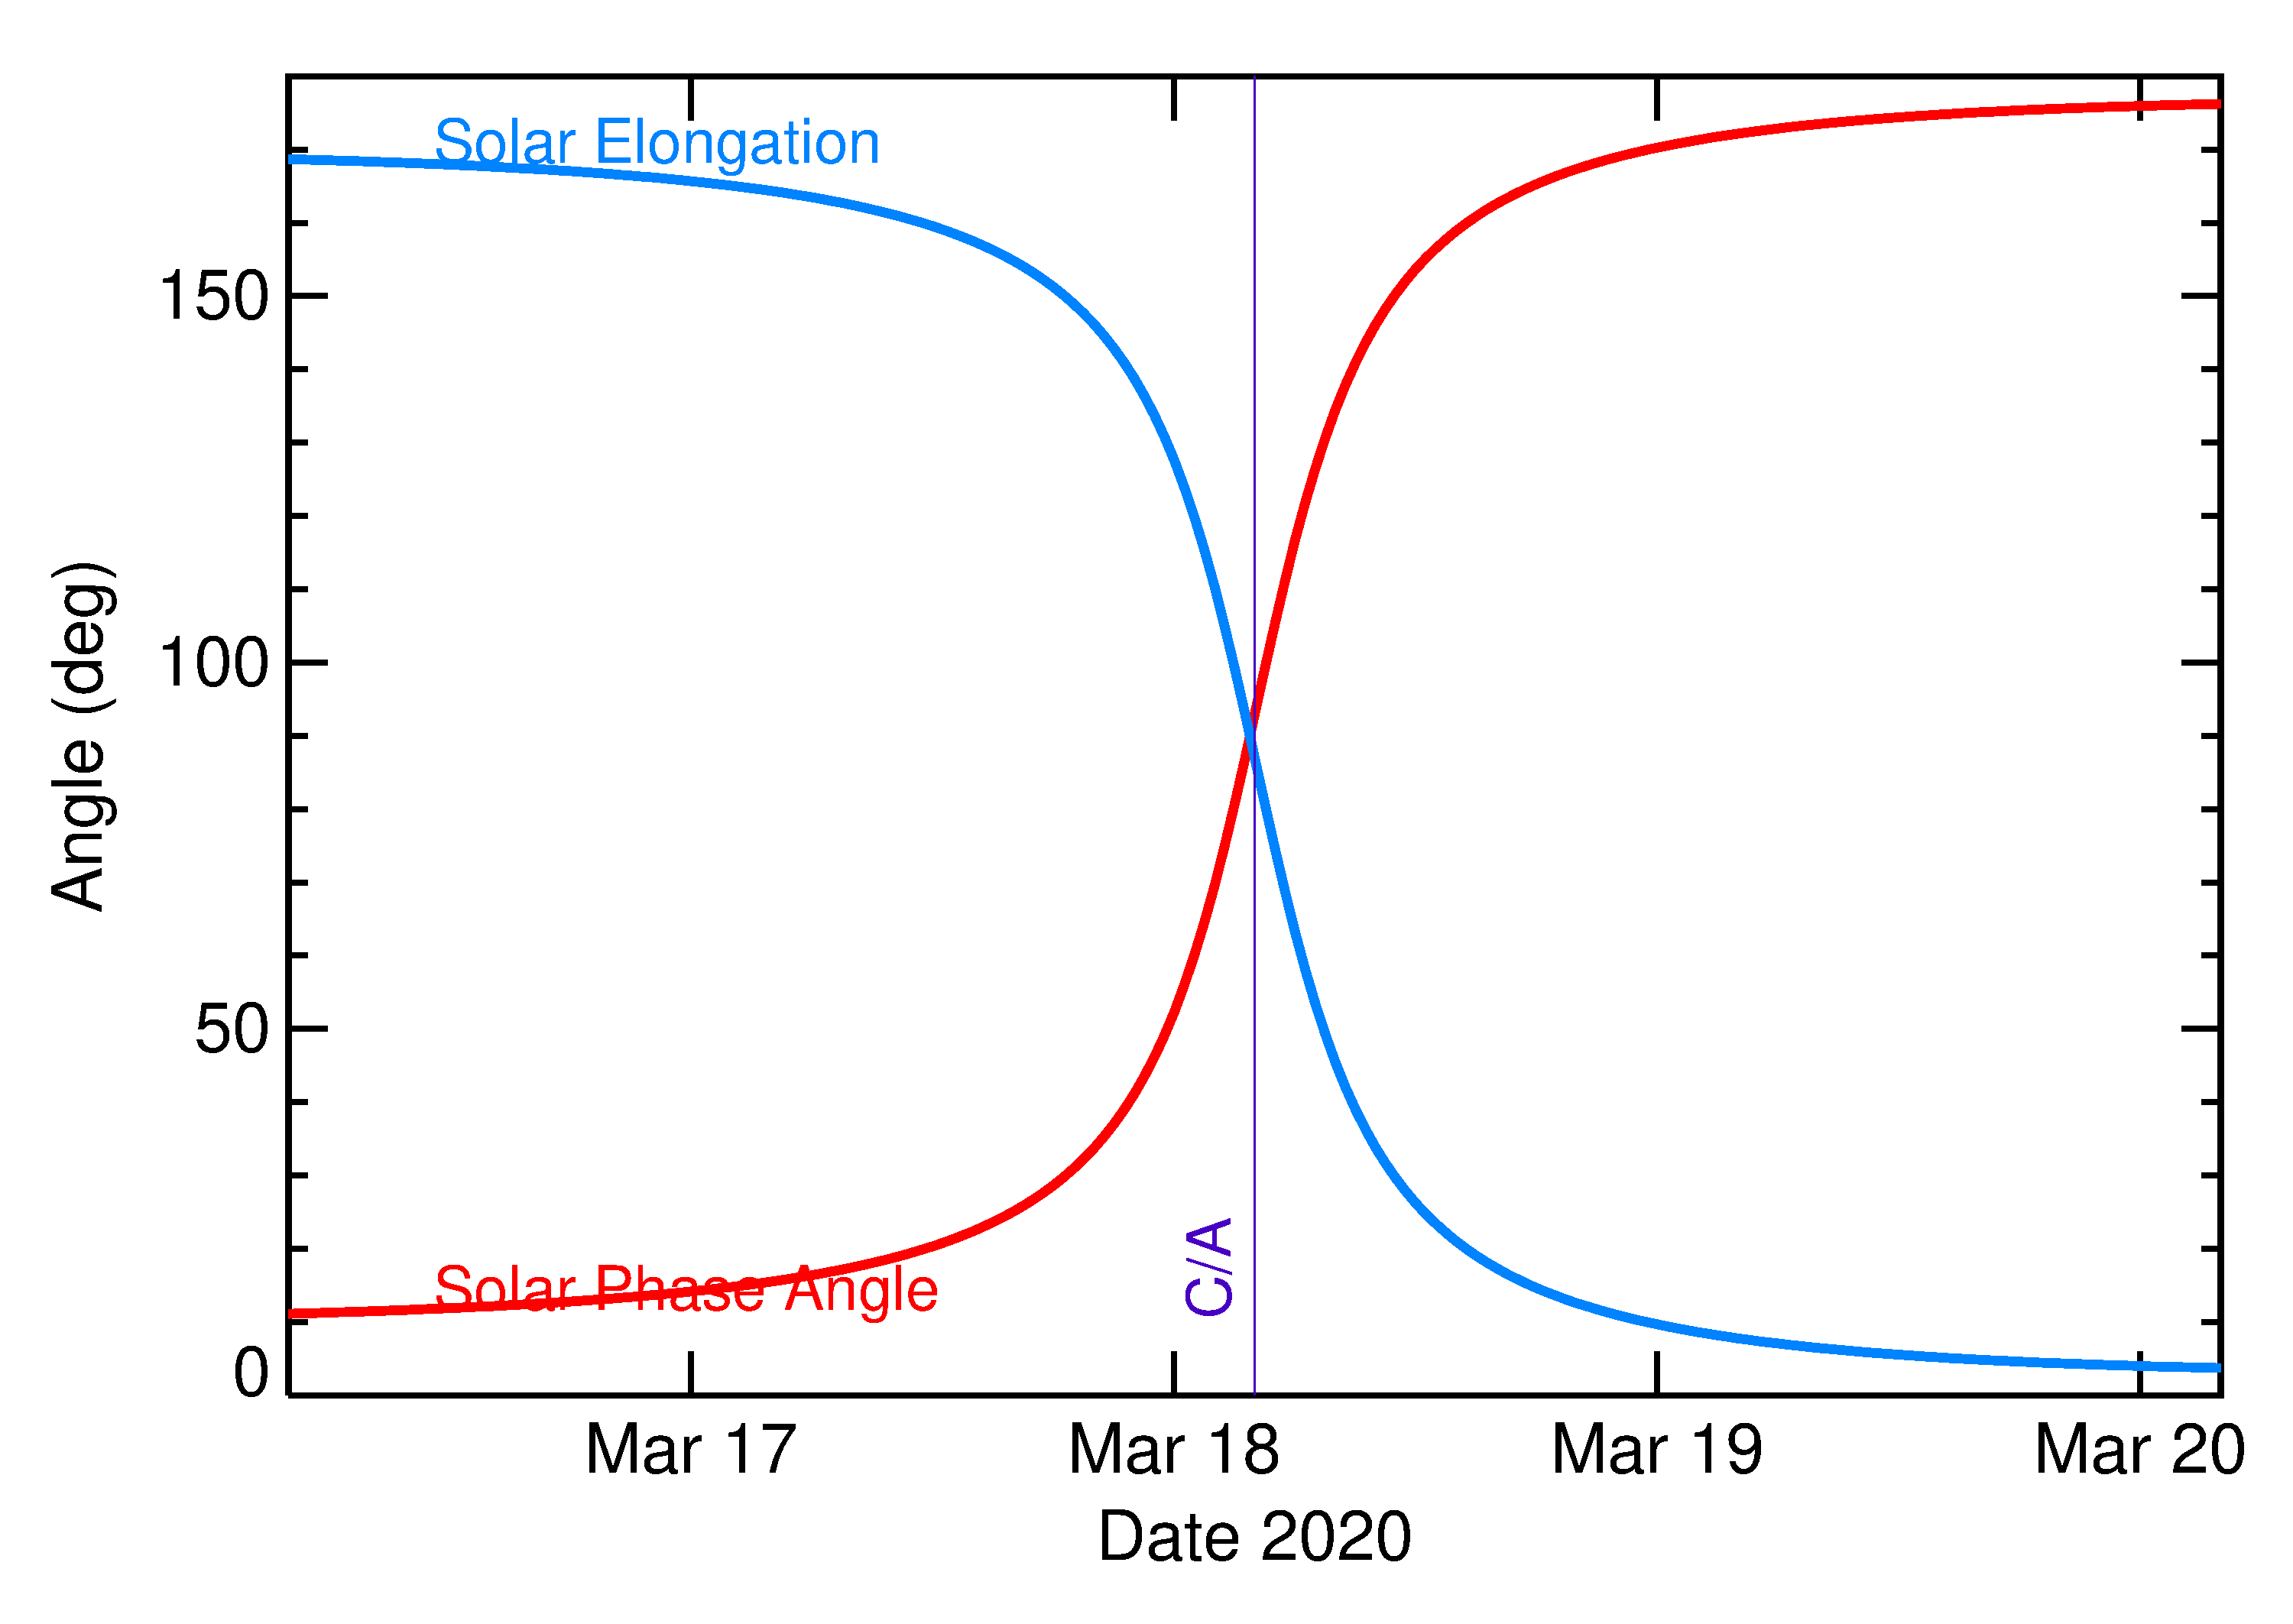 Solar Elongation and Solar Phase Angle of 2020 FD in the days around closest approach